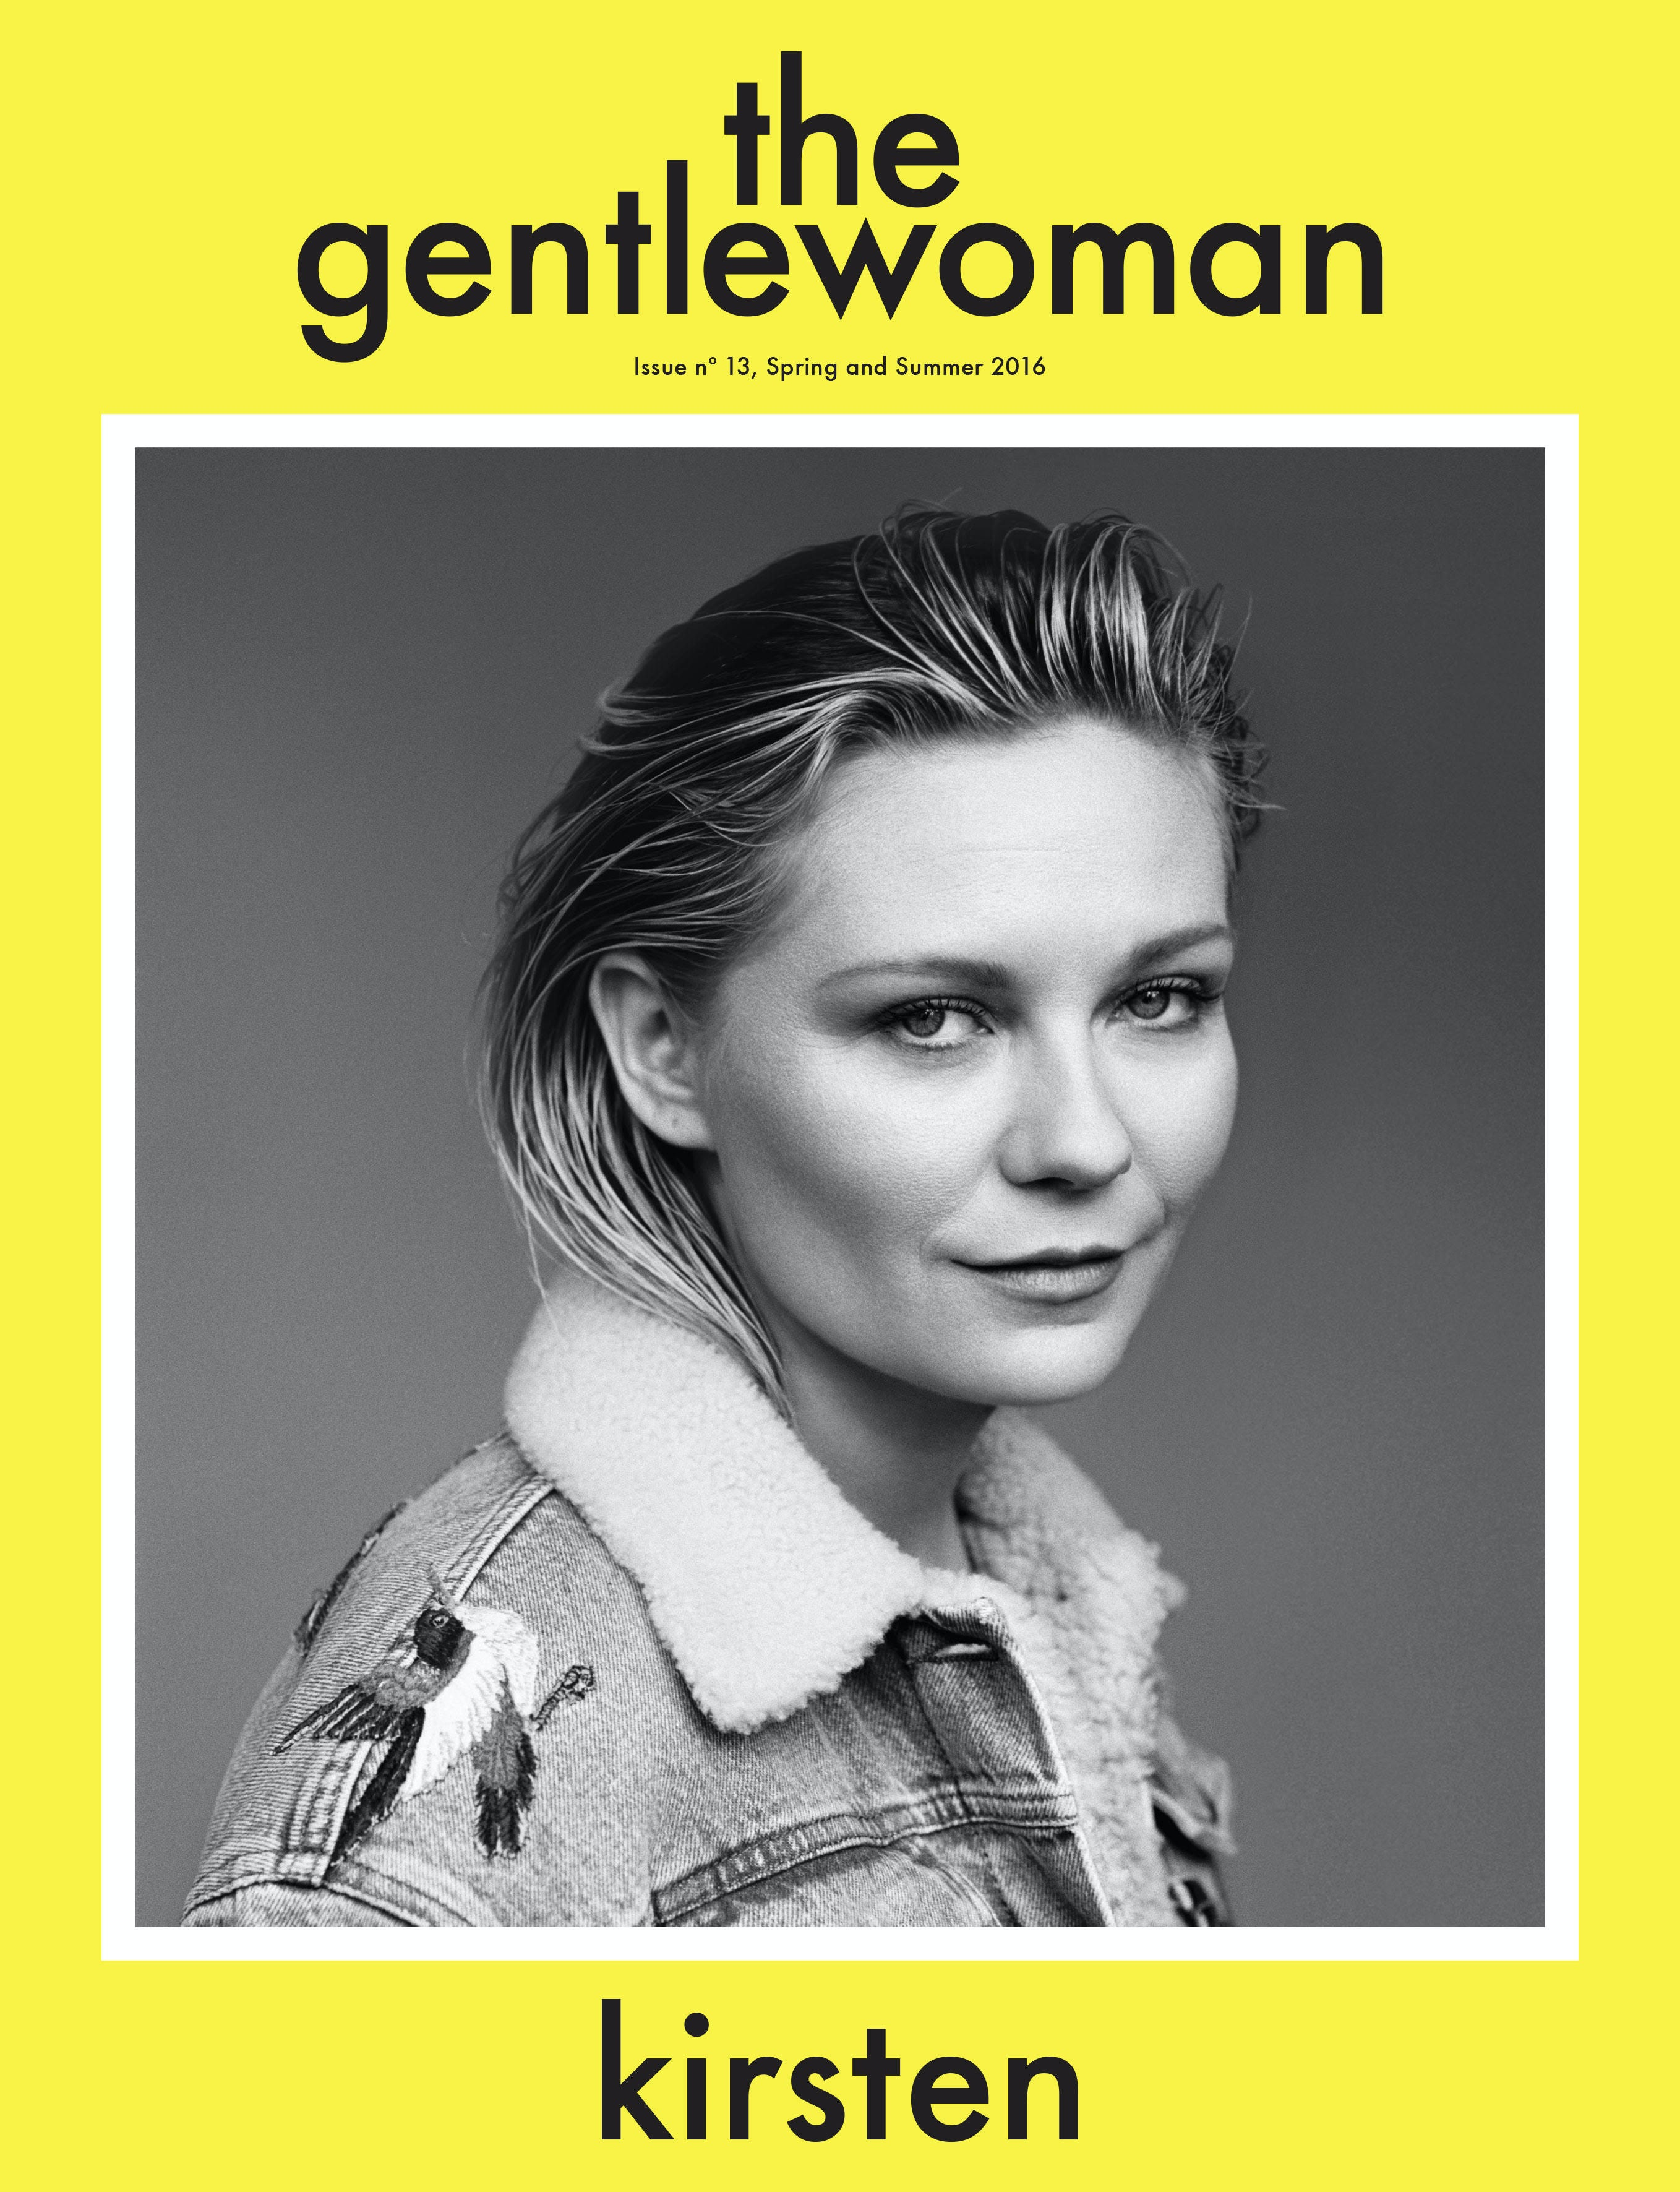 Spring/Summer 2016 issue of The Gentlewoman